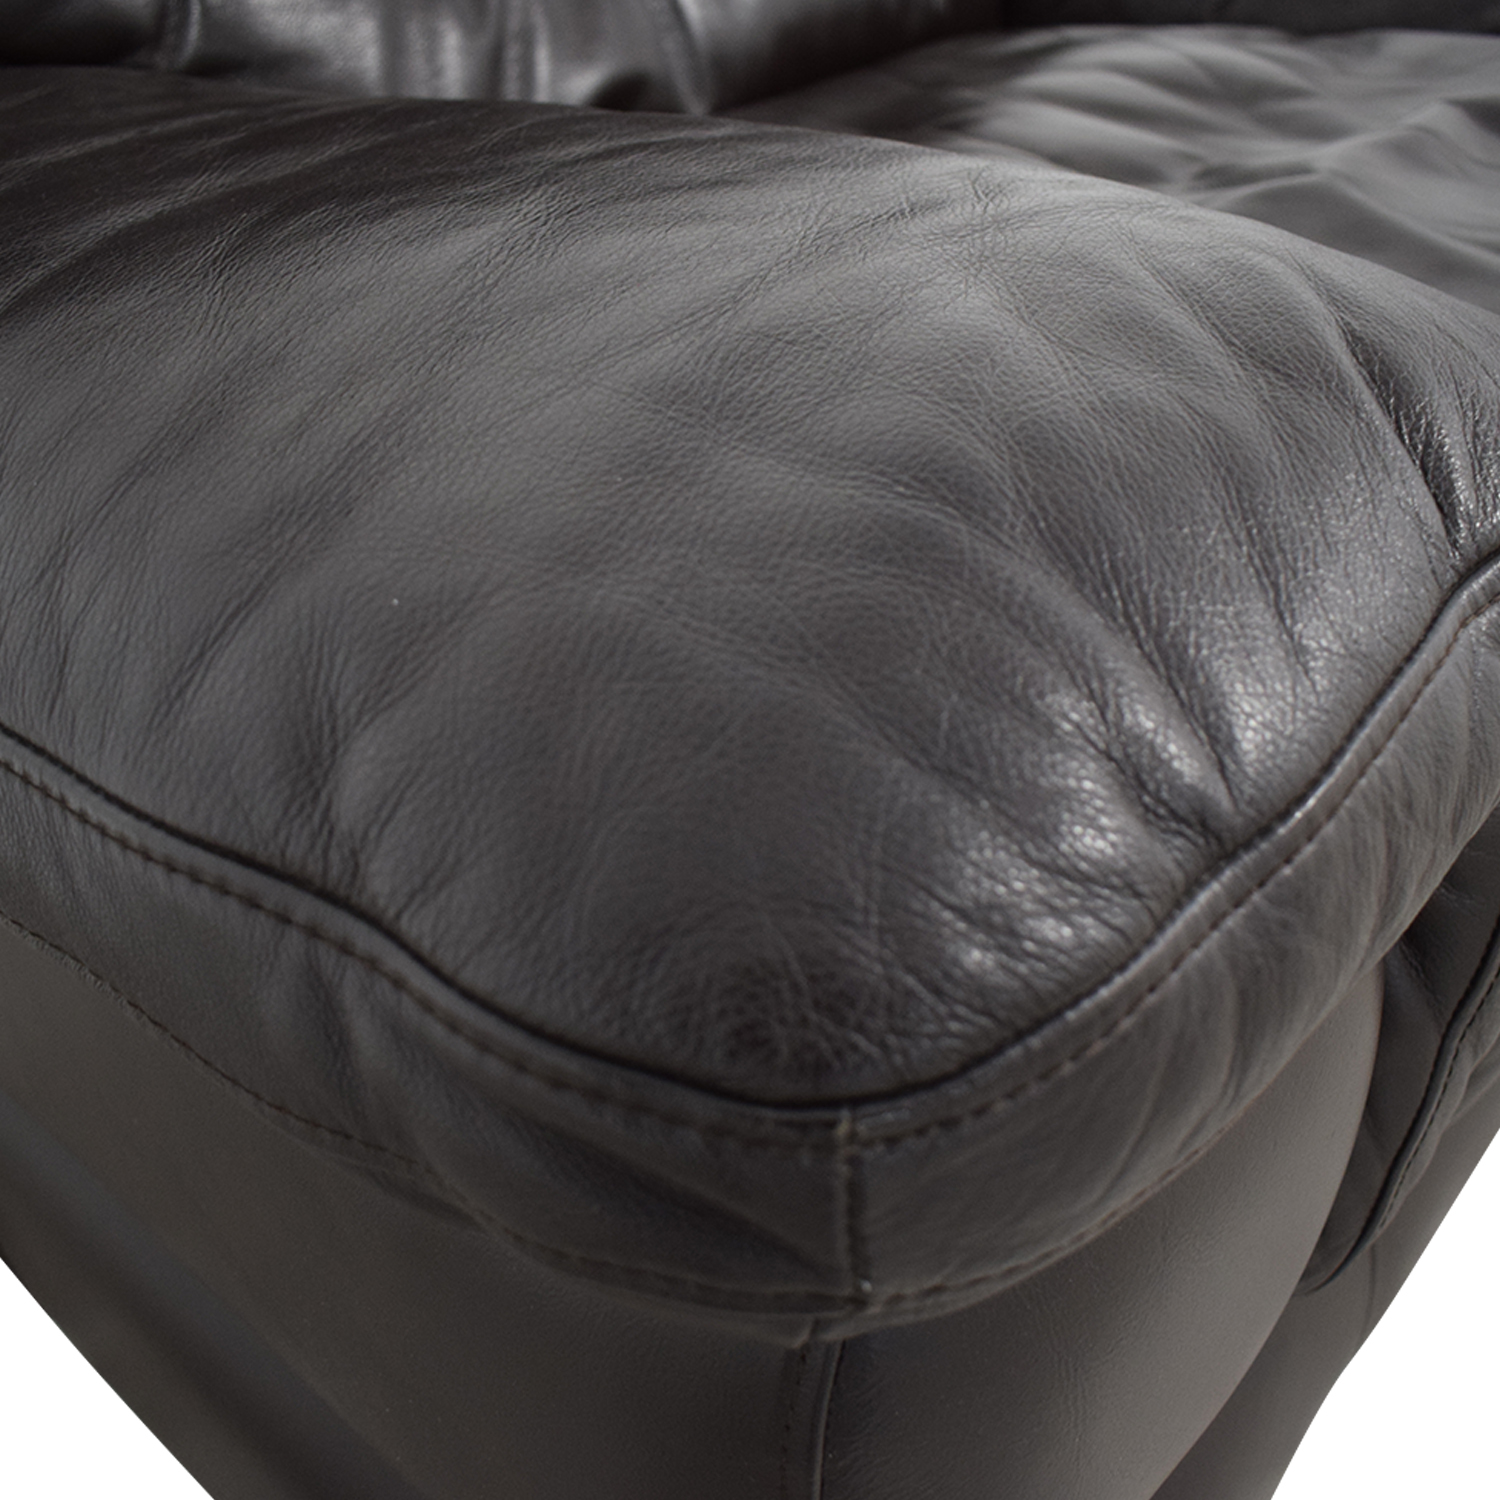 Accent Chair At Bobs Furniture: Bob's Discount Furniture Bob's Discount